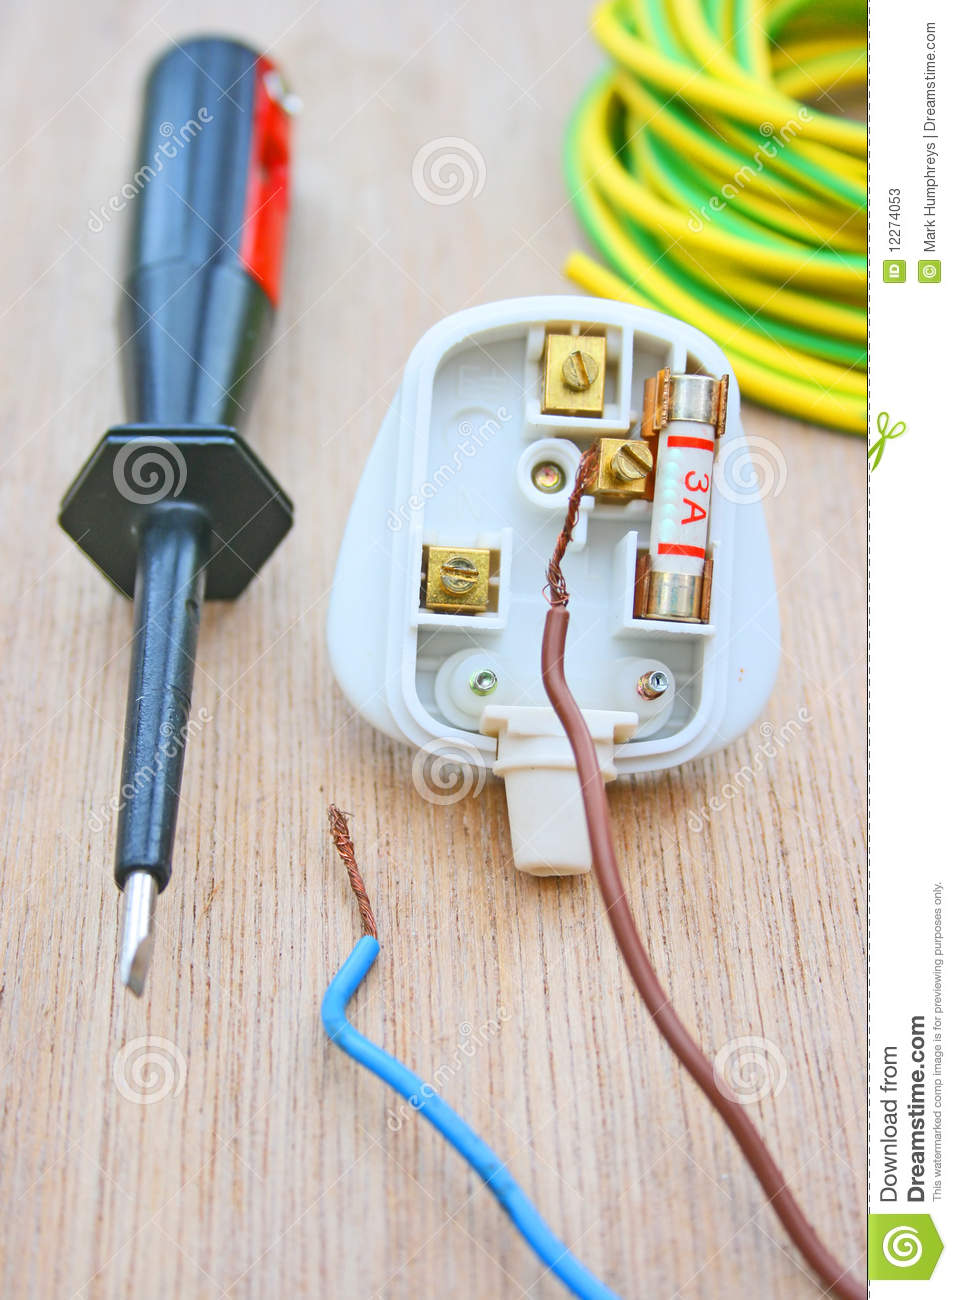 hight resolution of household electrical plug fitted with a three amp fuse and with live and neutral wires disconnected also an electricians screwdriver with earth wire sleeve